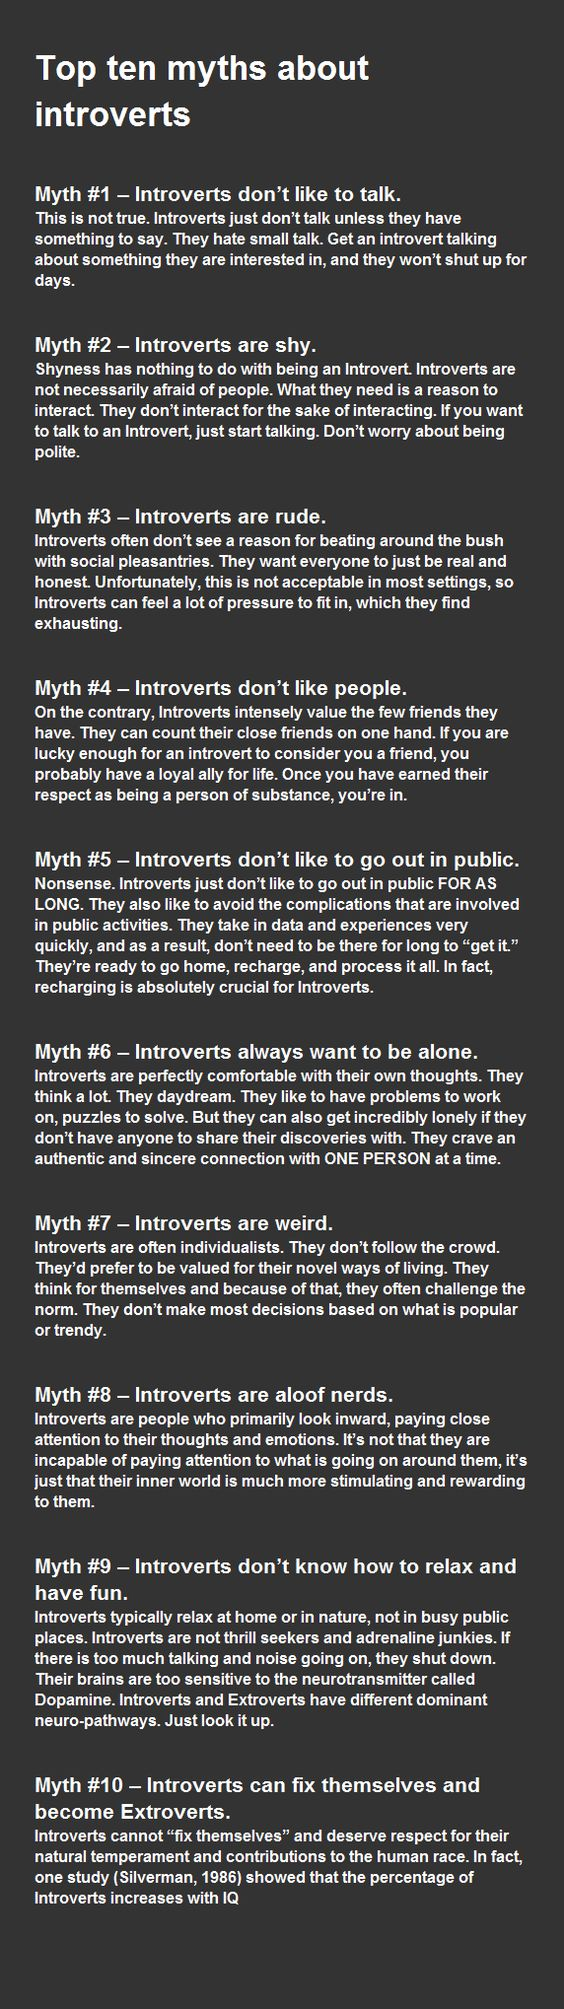 Myths about introverts  This is so me.... And most of my family and friends are total extroverts!